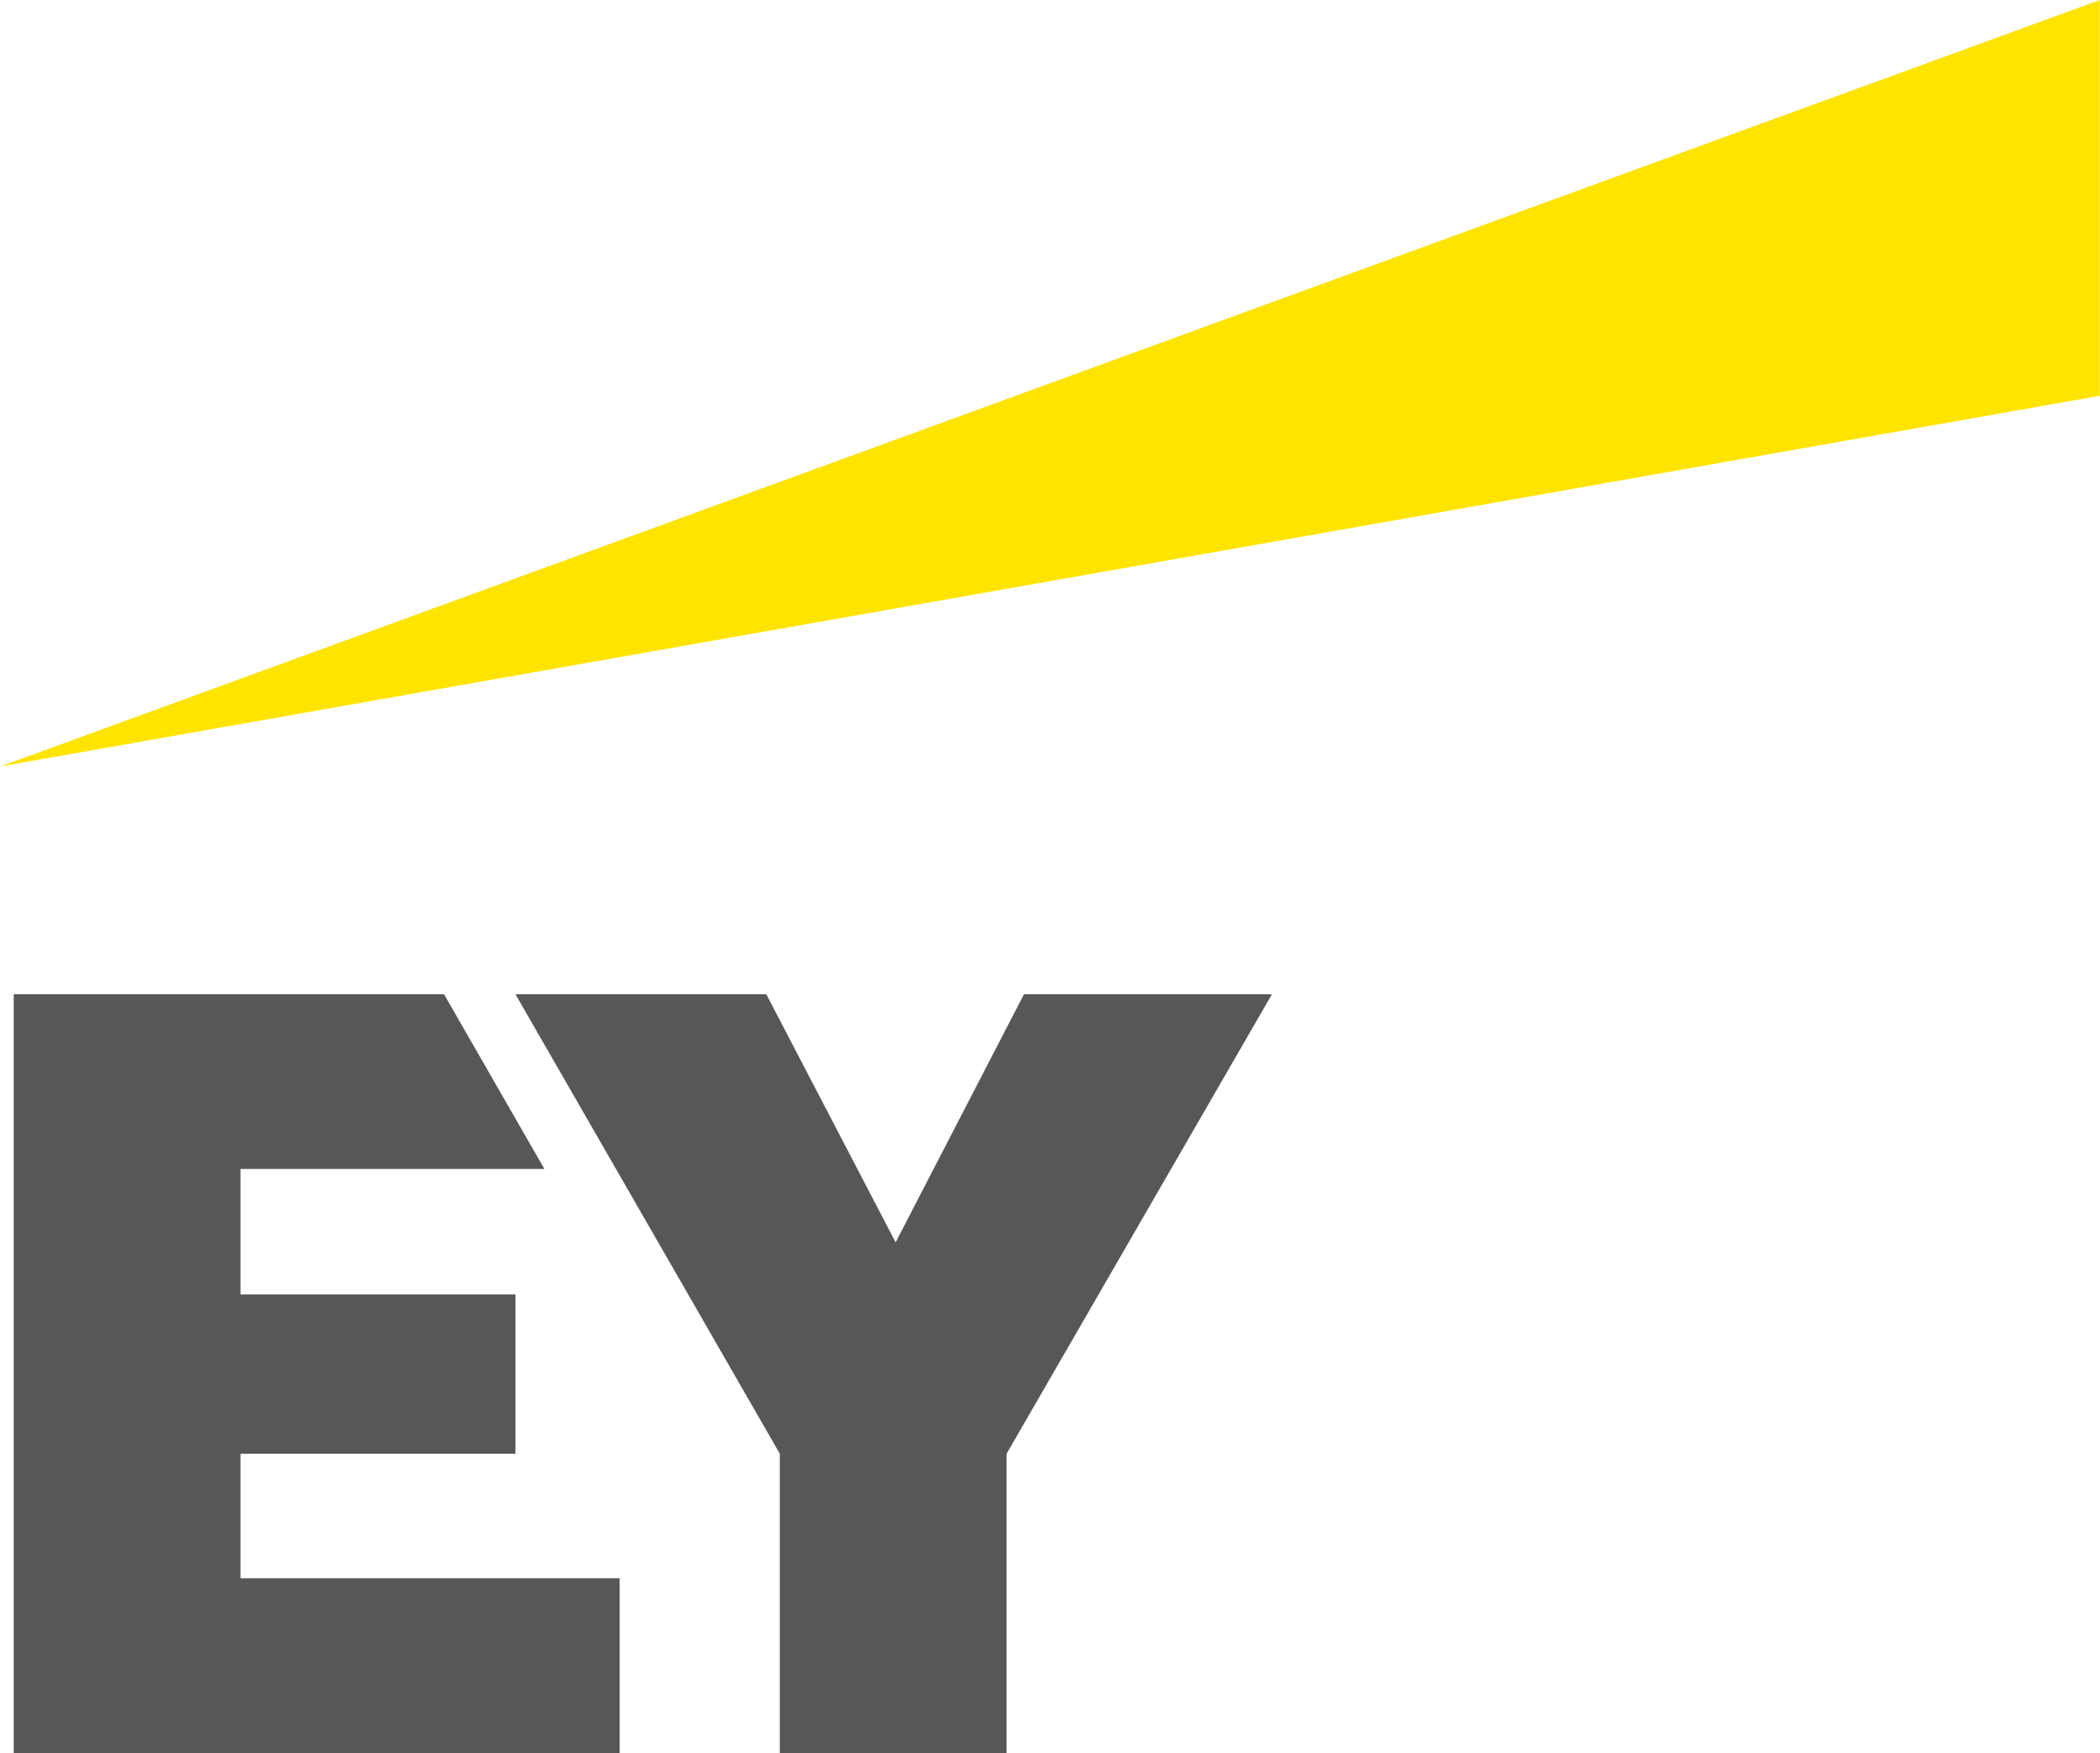 Clipart ey jpg freeuse download Ernst and young logo clipart images gallery for free download ... jpg freeuse download